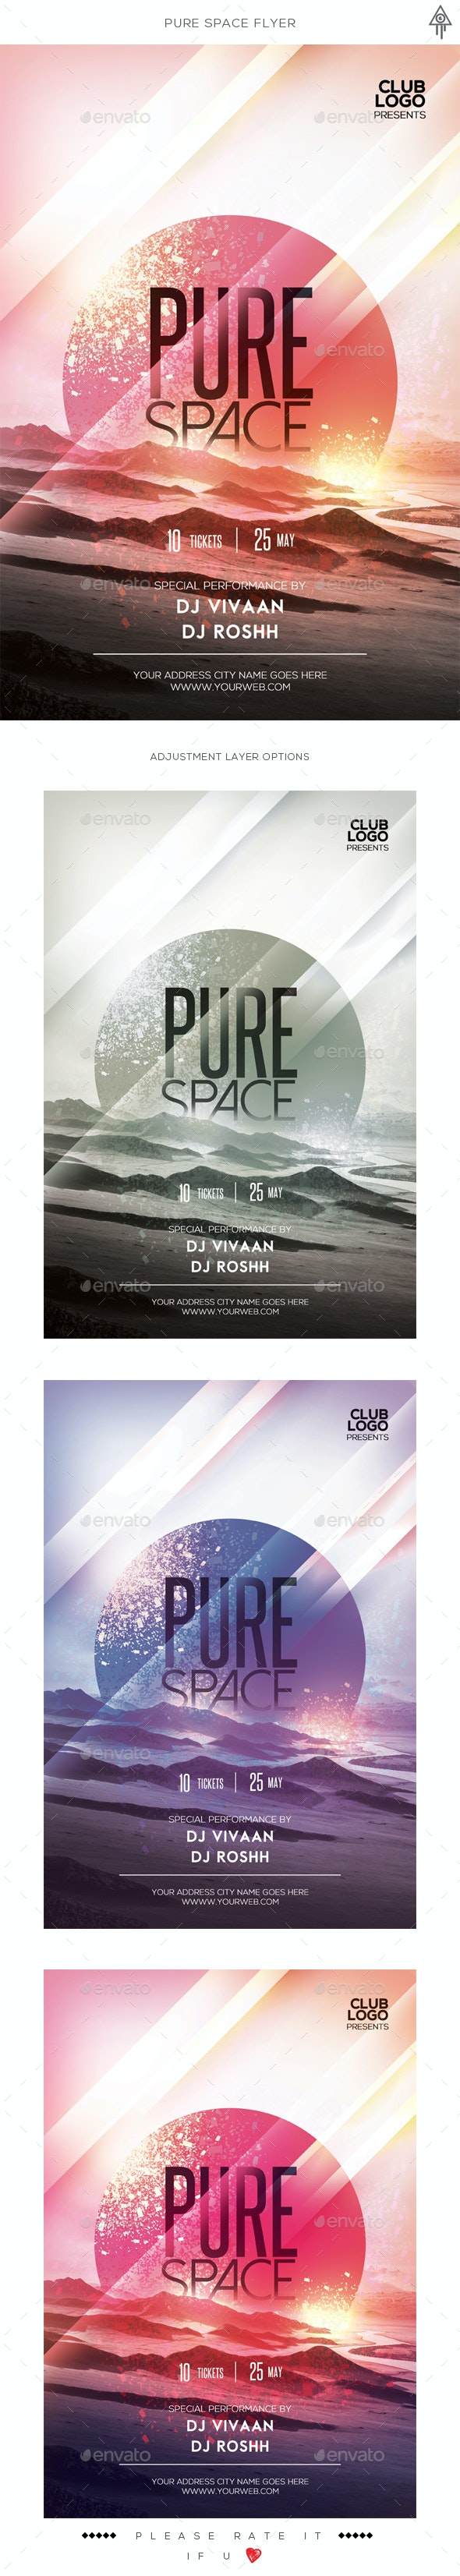 Pure Space Flyer - Clubs & Parties Events